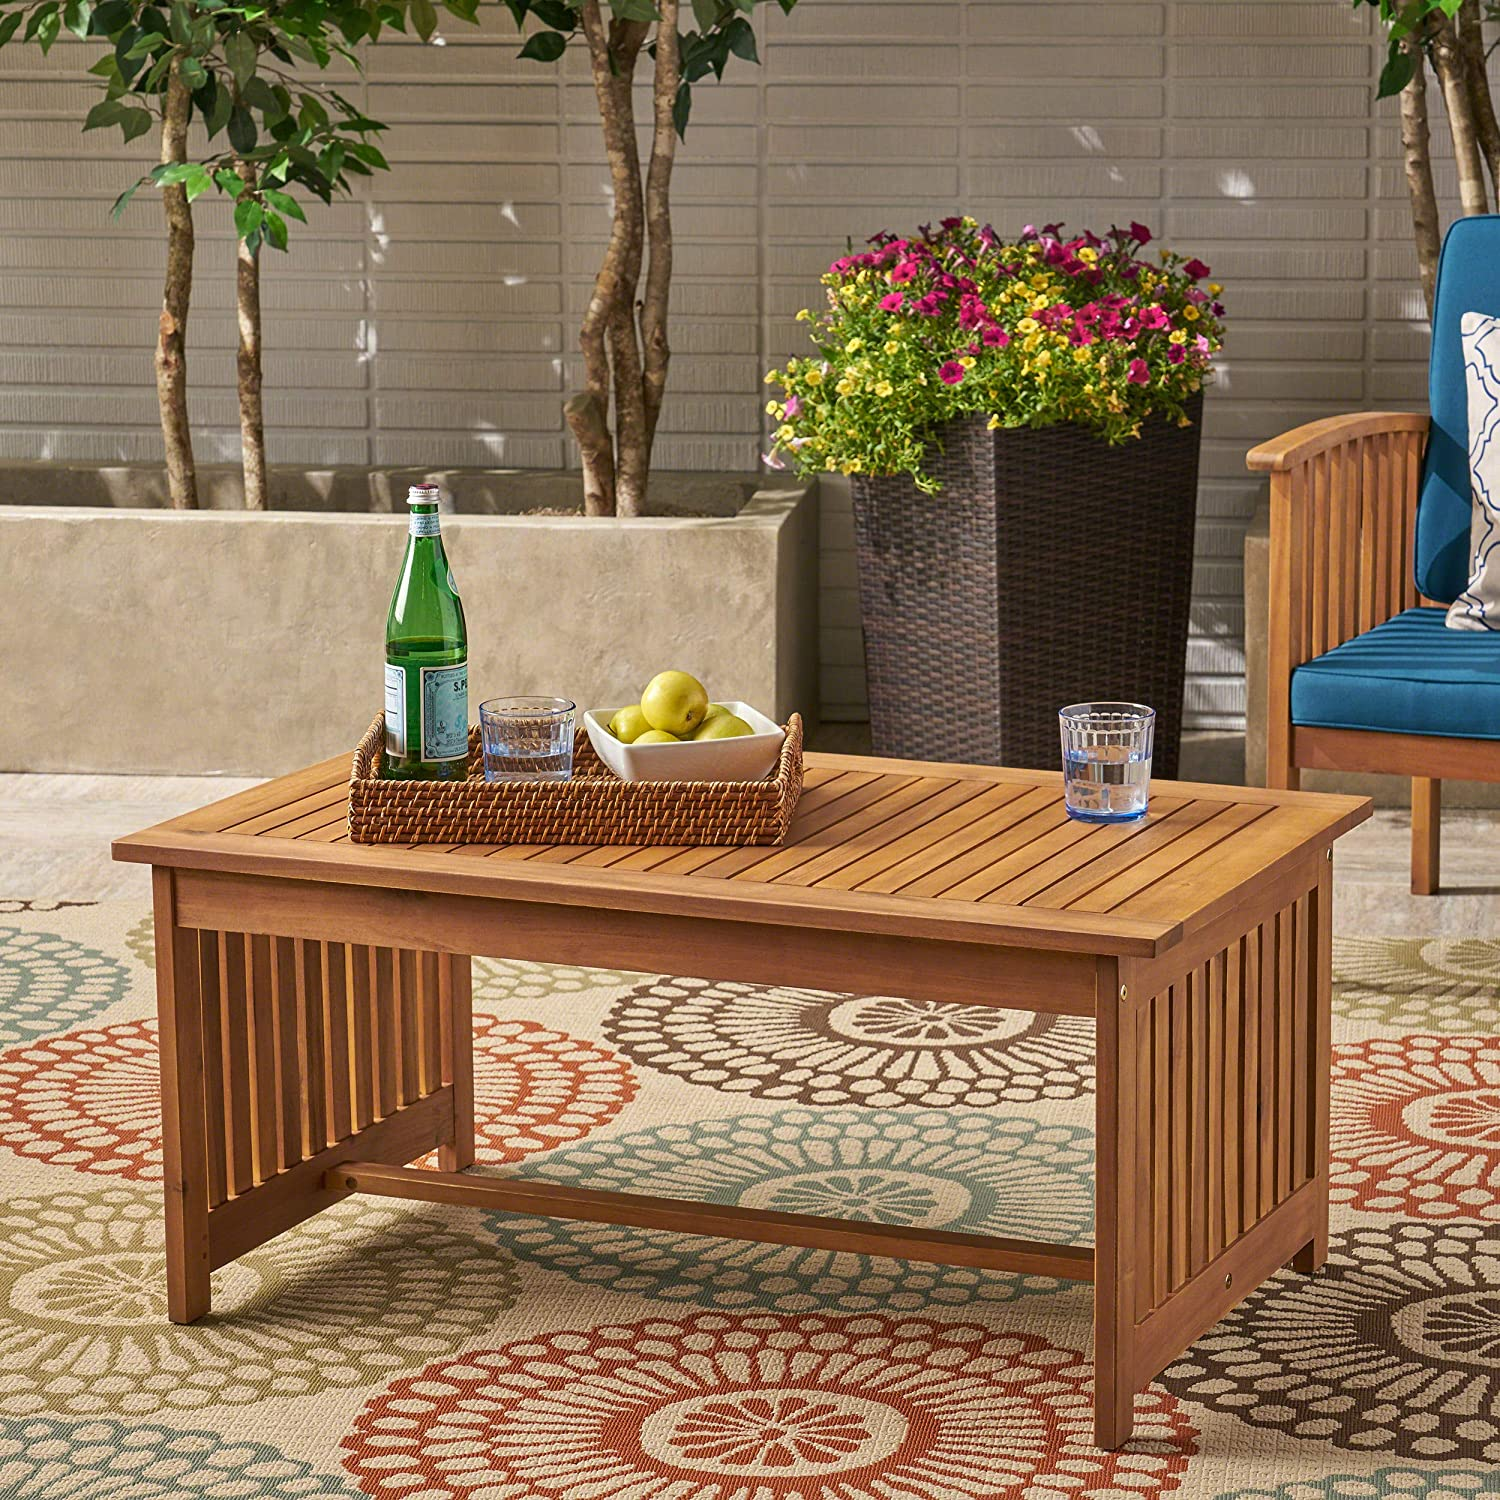 Great Deal Furniture Grace Outdoor Acacia Wood Coffee Table, Brown Patina Finish